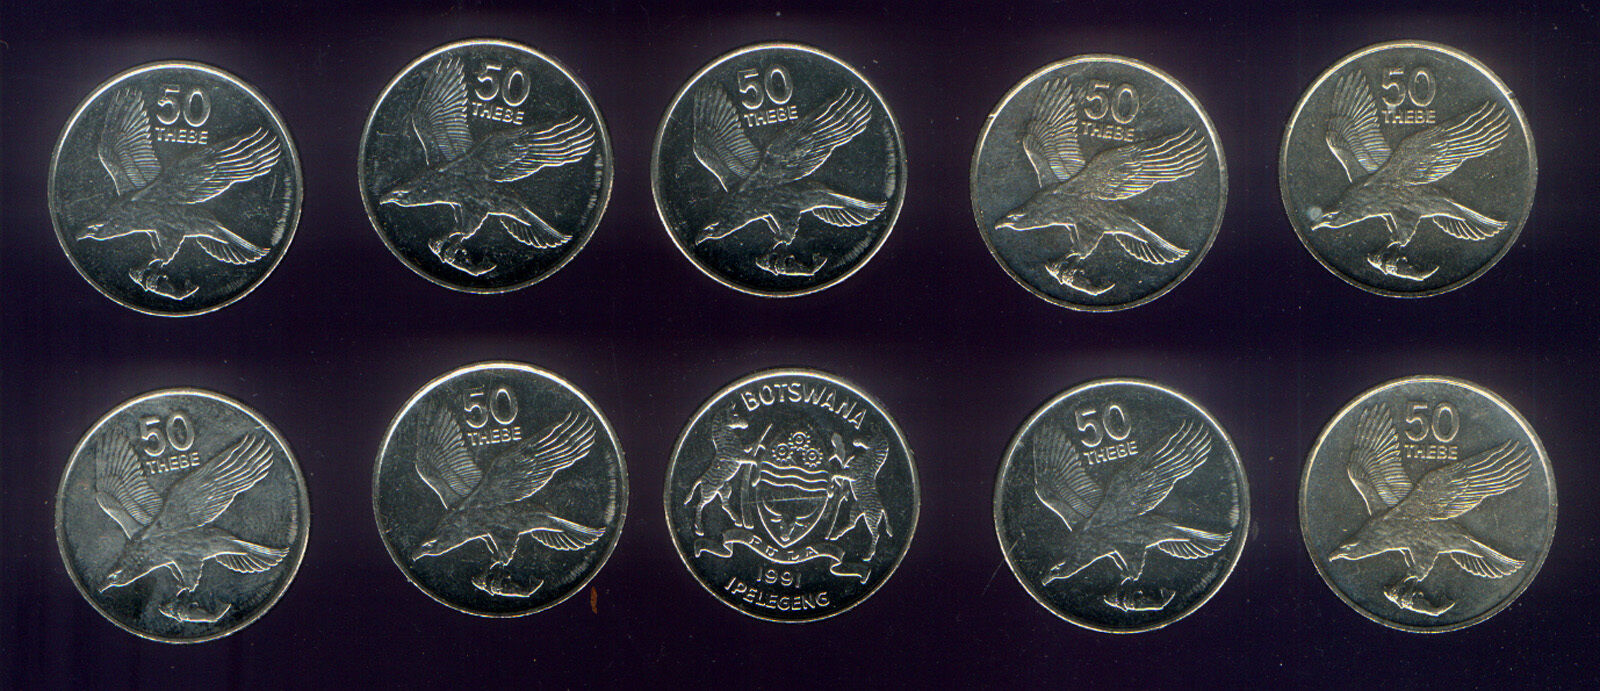 WHOLESALE 25 UNCIRCULATED EAGLE with FISH COINS 50 THEBE KM# 7a BOTSWANA of 1991